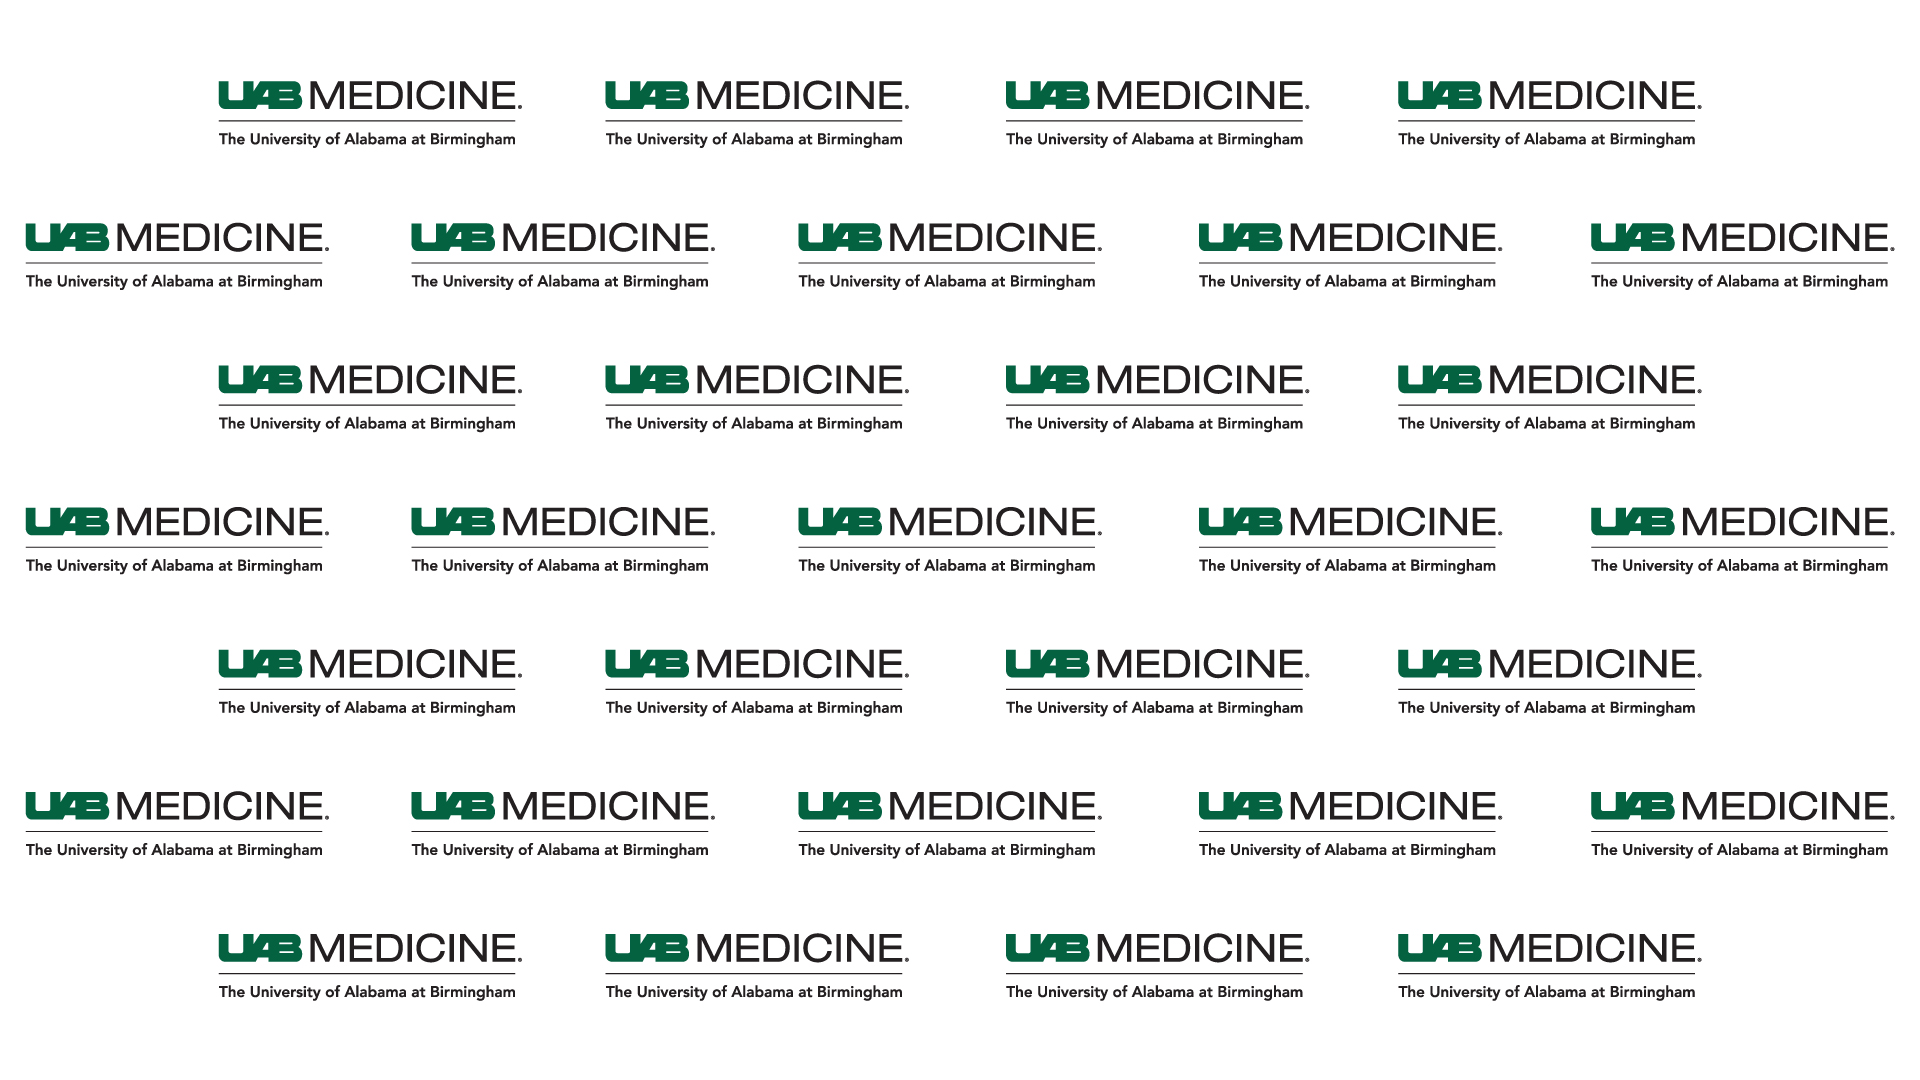 UAB Medicine logo repeated on white backdrop.